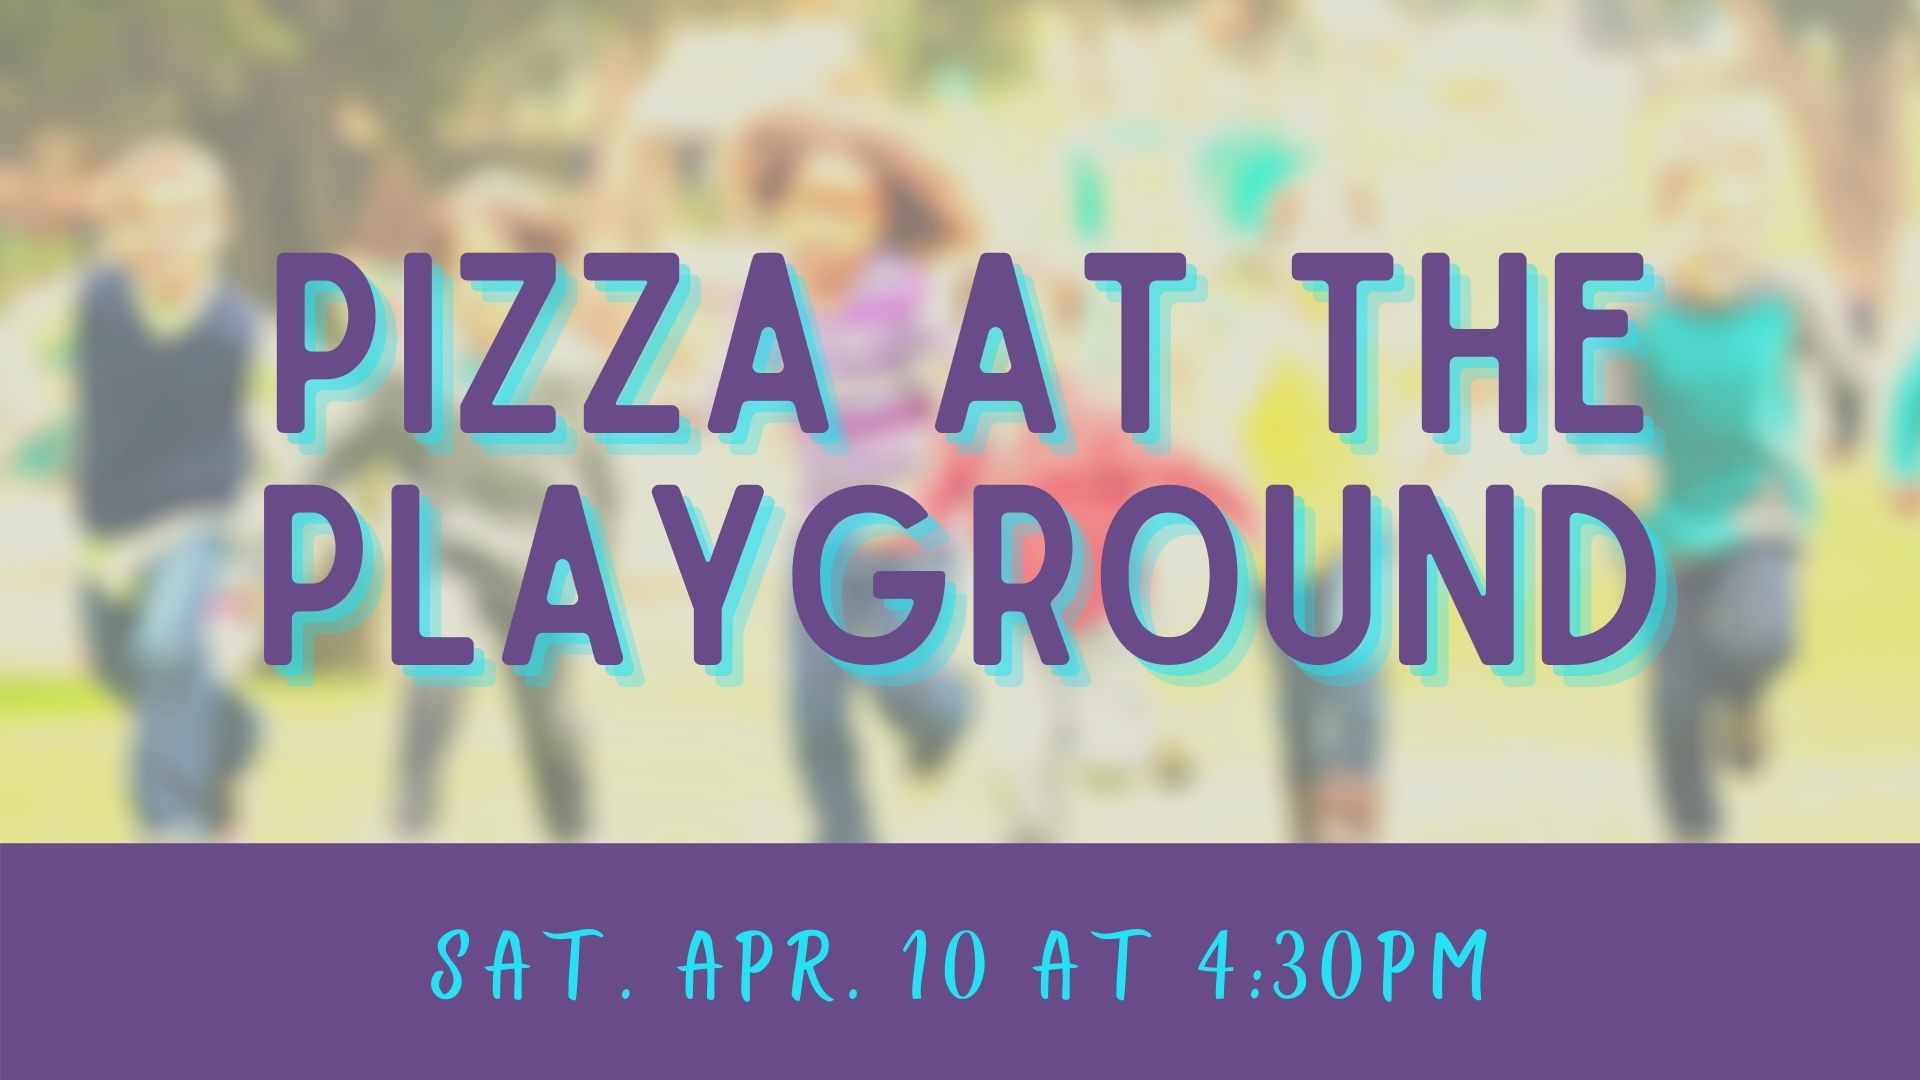 2021 Children's Ministry Pizza at Playground image